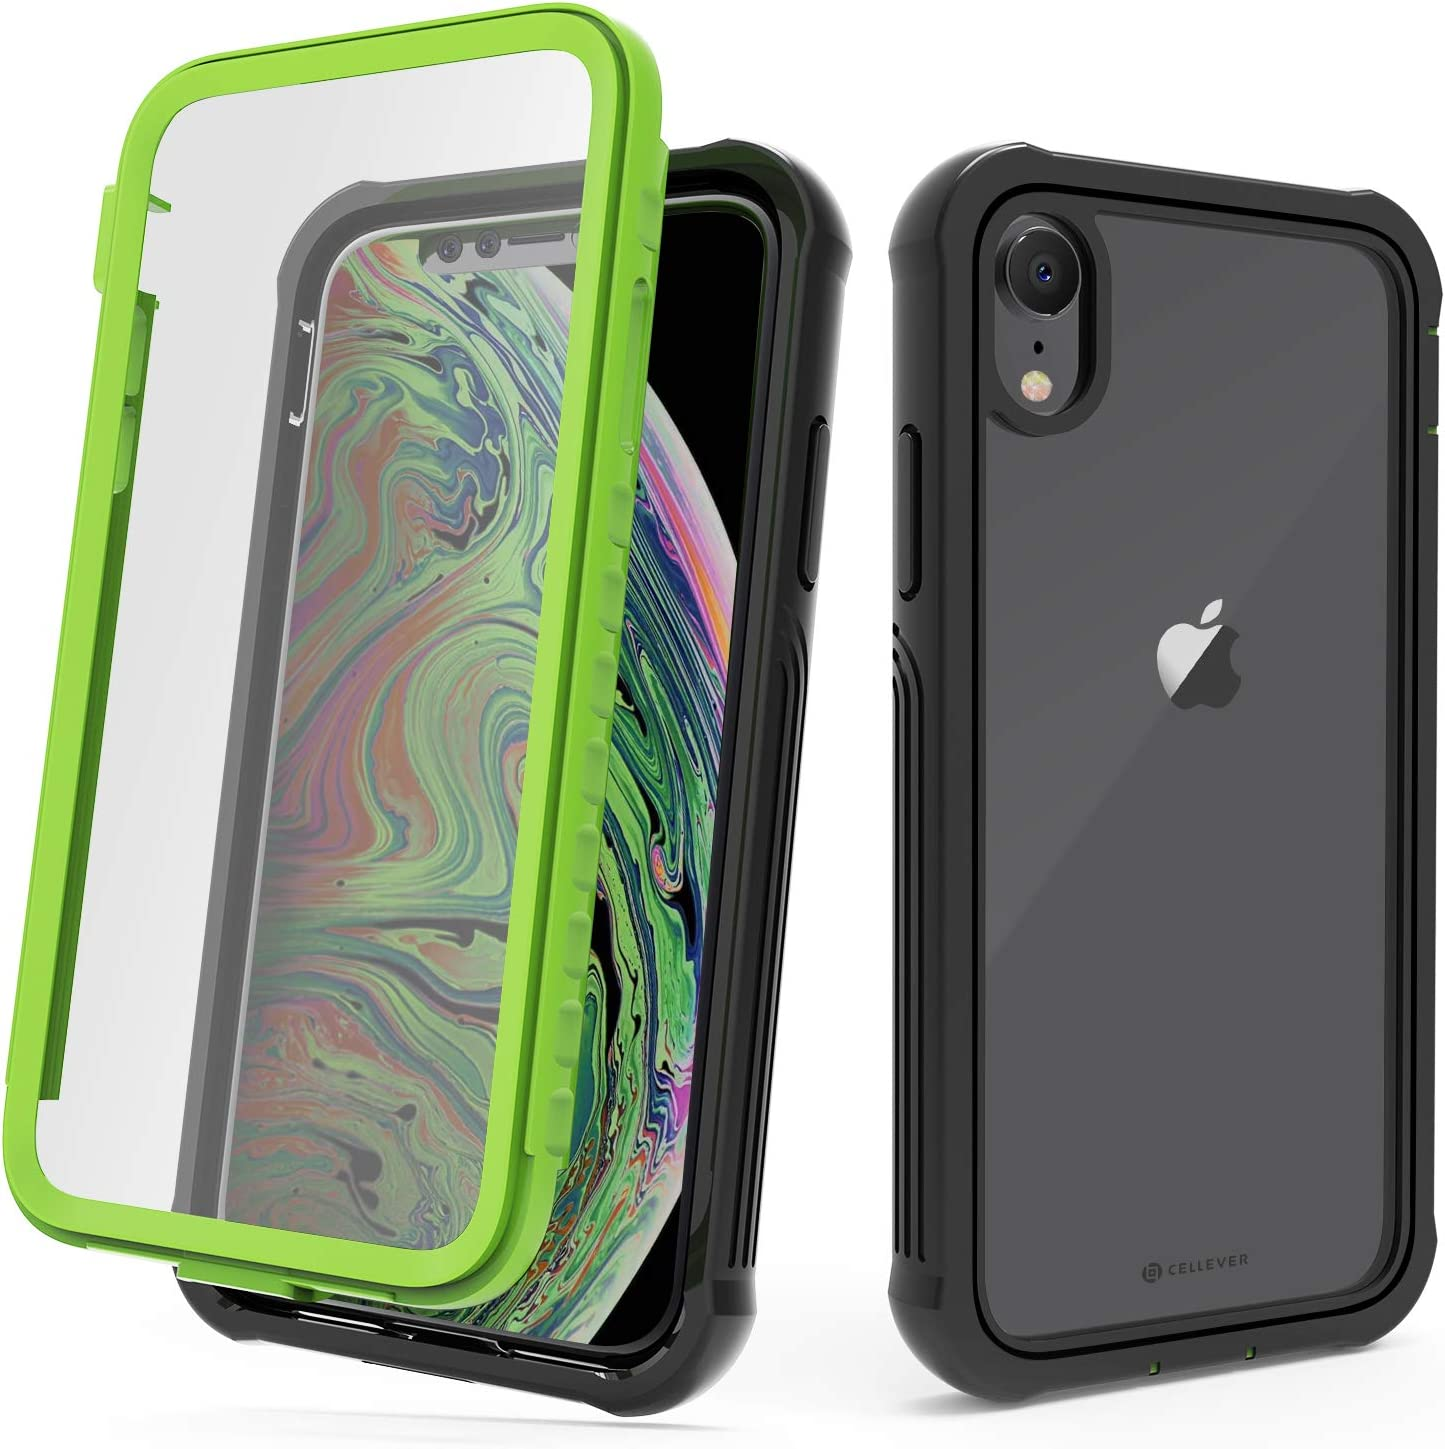 CellEver Compatible with iPhone XR Case, Heavy Duty Clear Full-Body Protective Transparent Cover with Soft Shock Absorbing TPU Bumper and Built-in Screen Protector - Lime Green